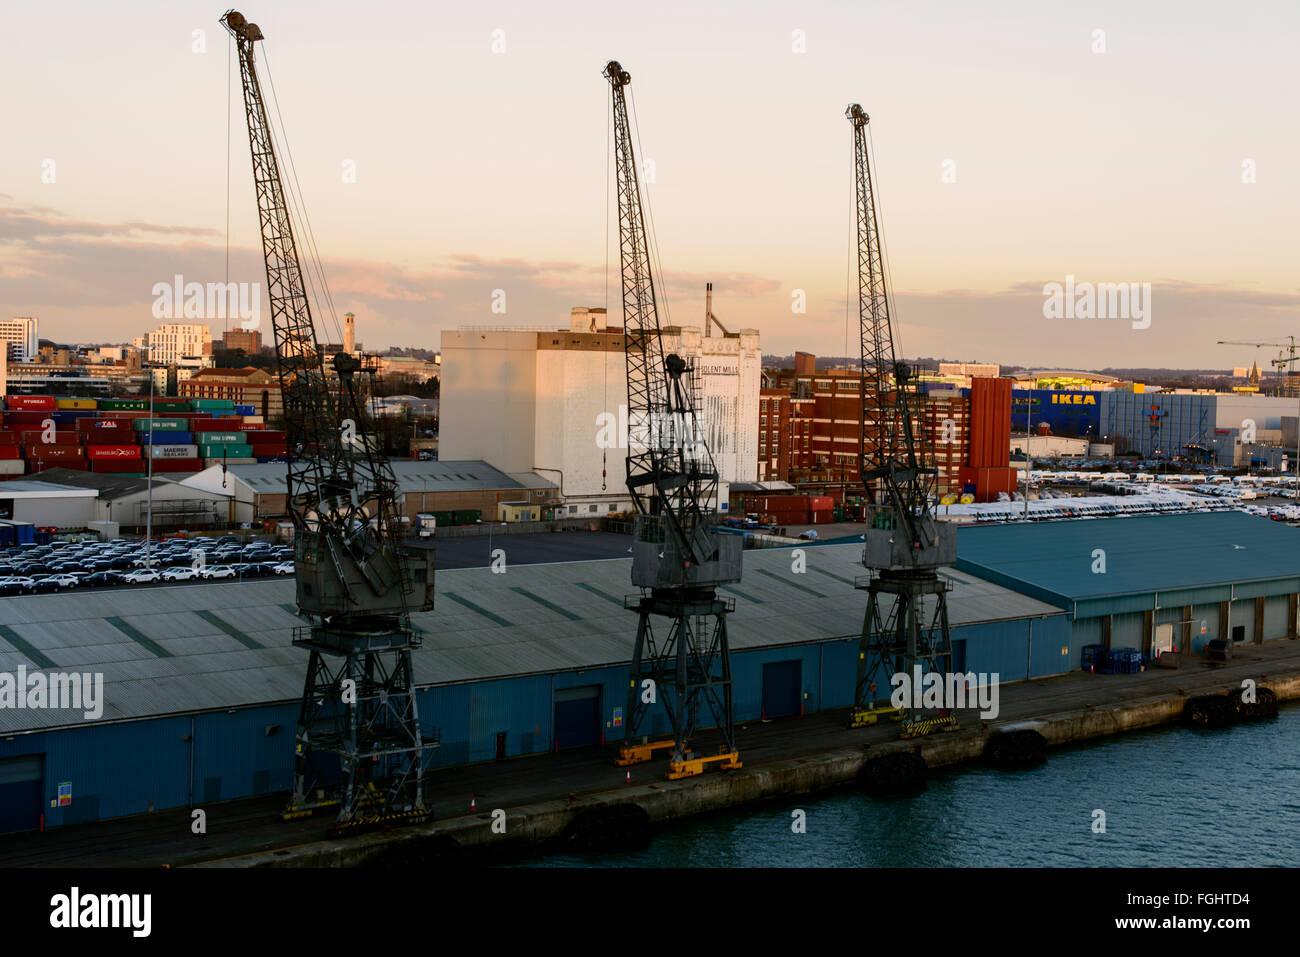 Cranes at Southampton docks in the evening - Stock Image